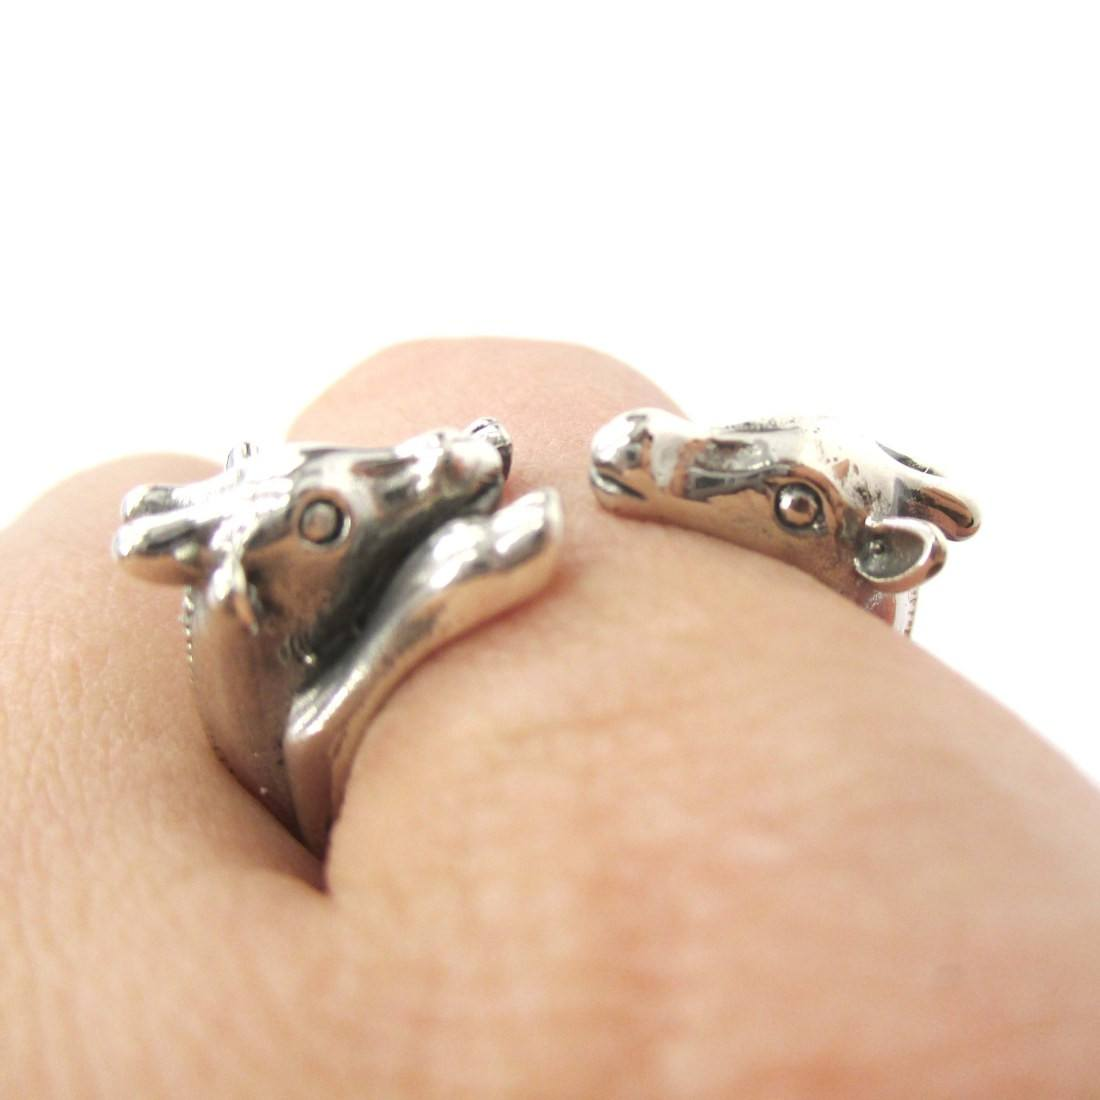 Giraffe Mother and Baby Shaped Animal Ring in Sterling Silver